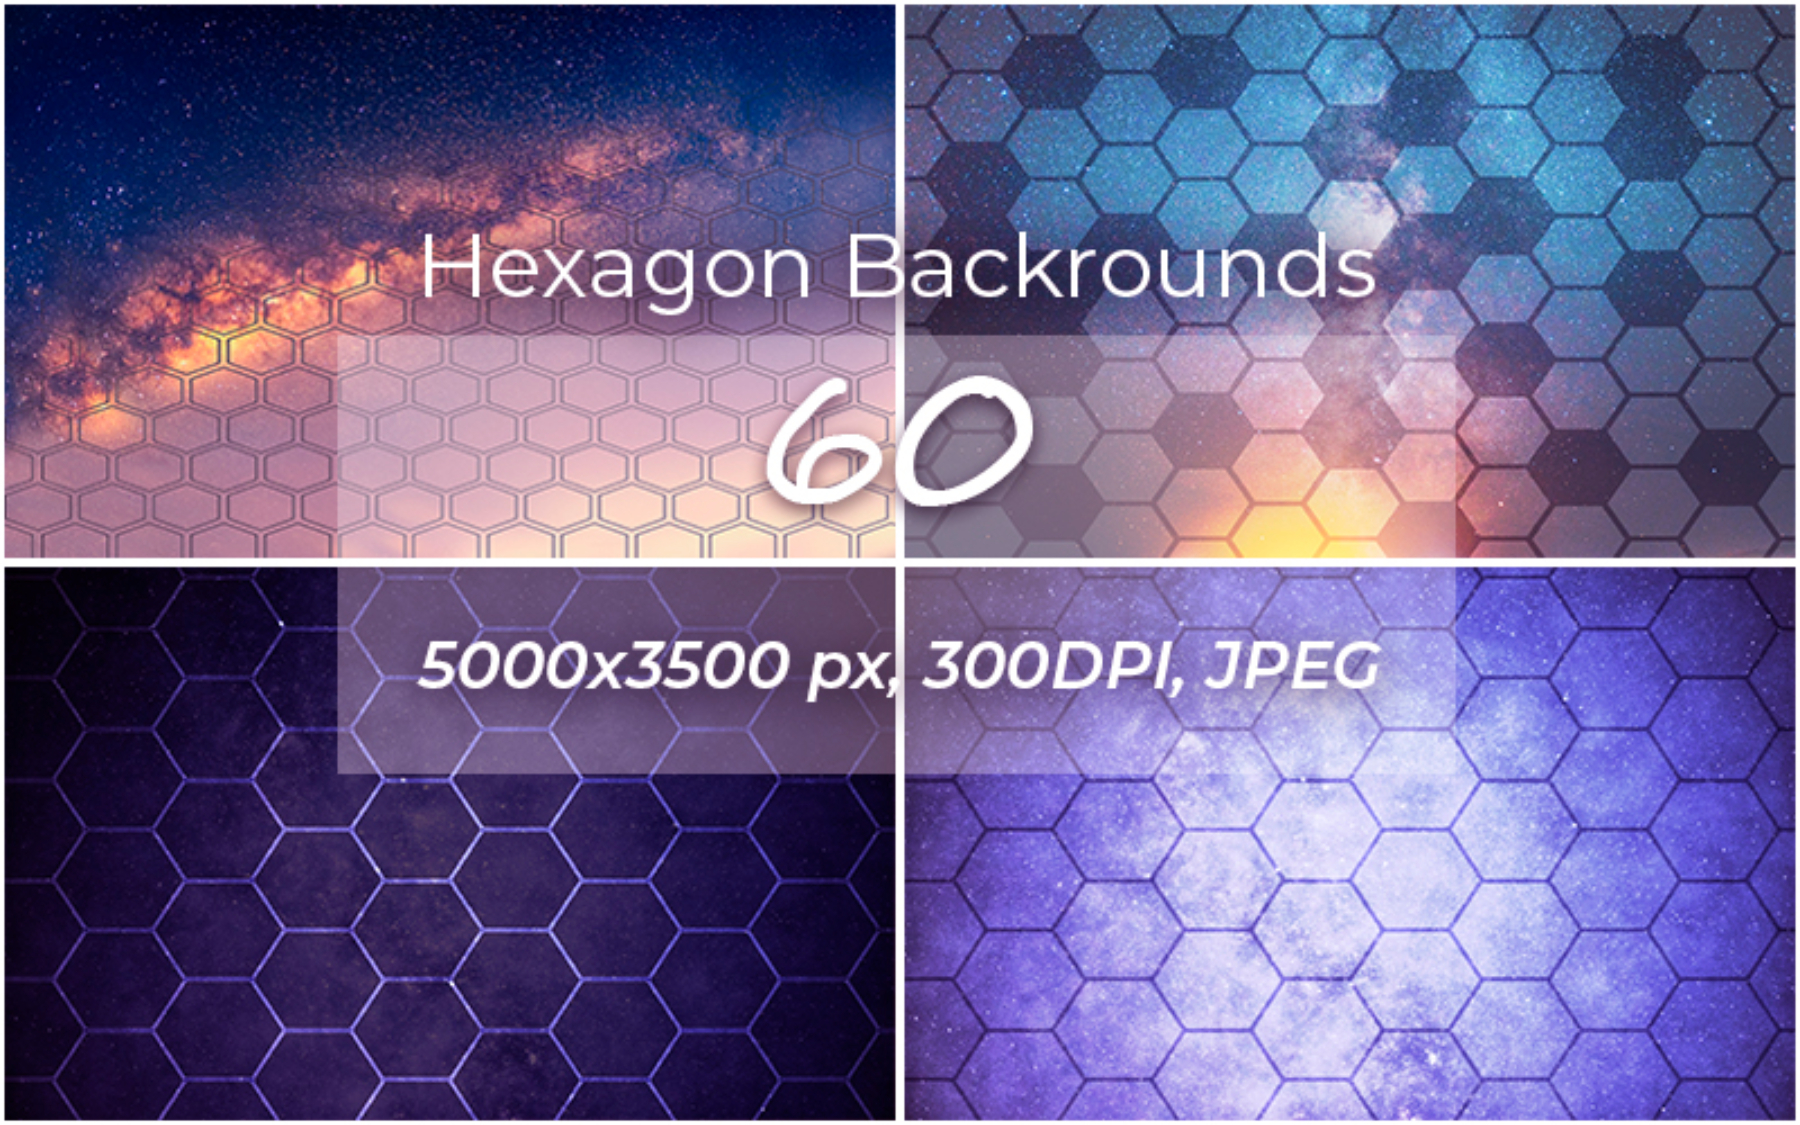 2000 High Resolution Backgrounds example image 4